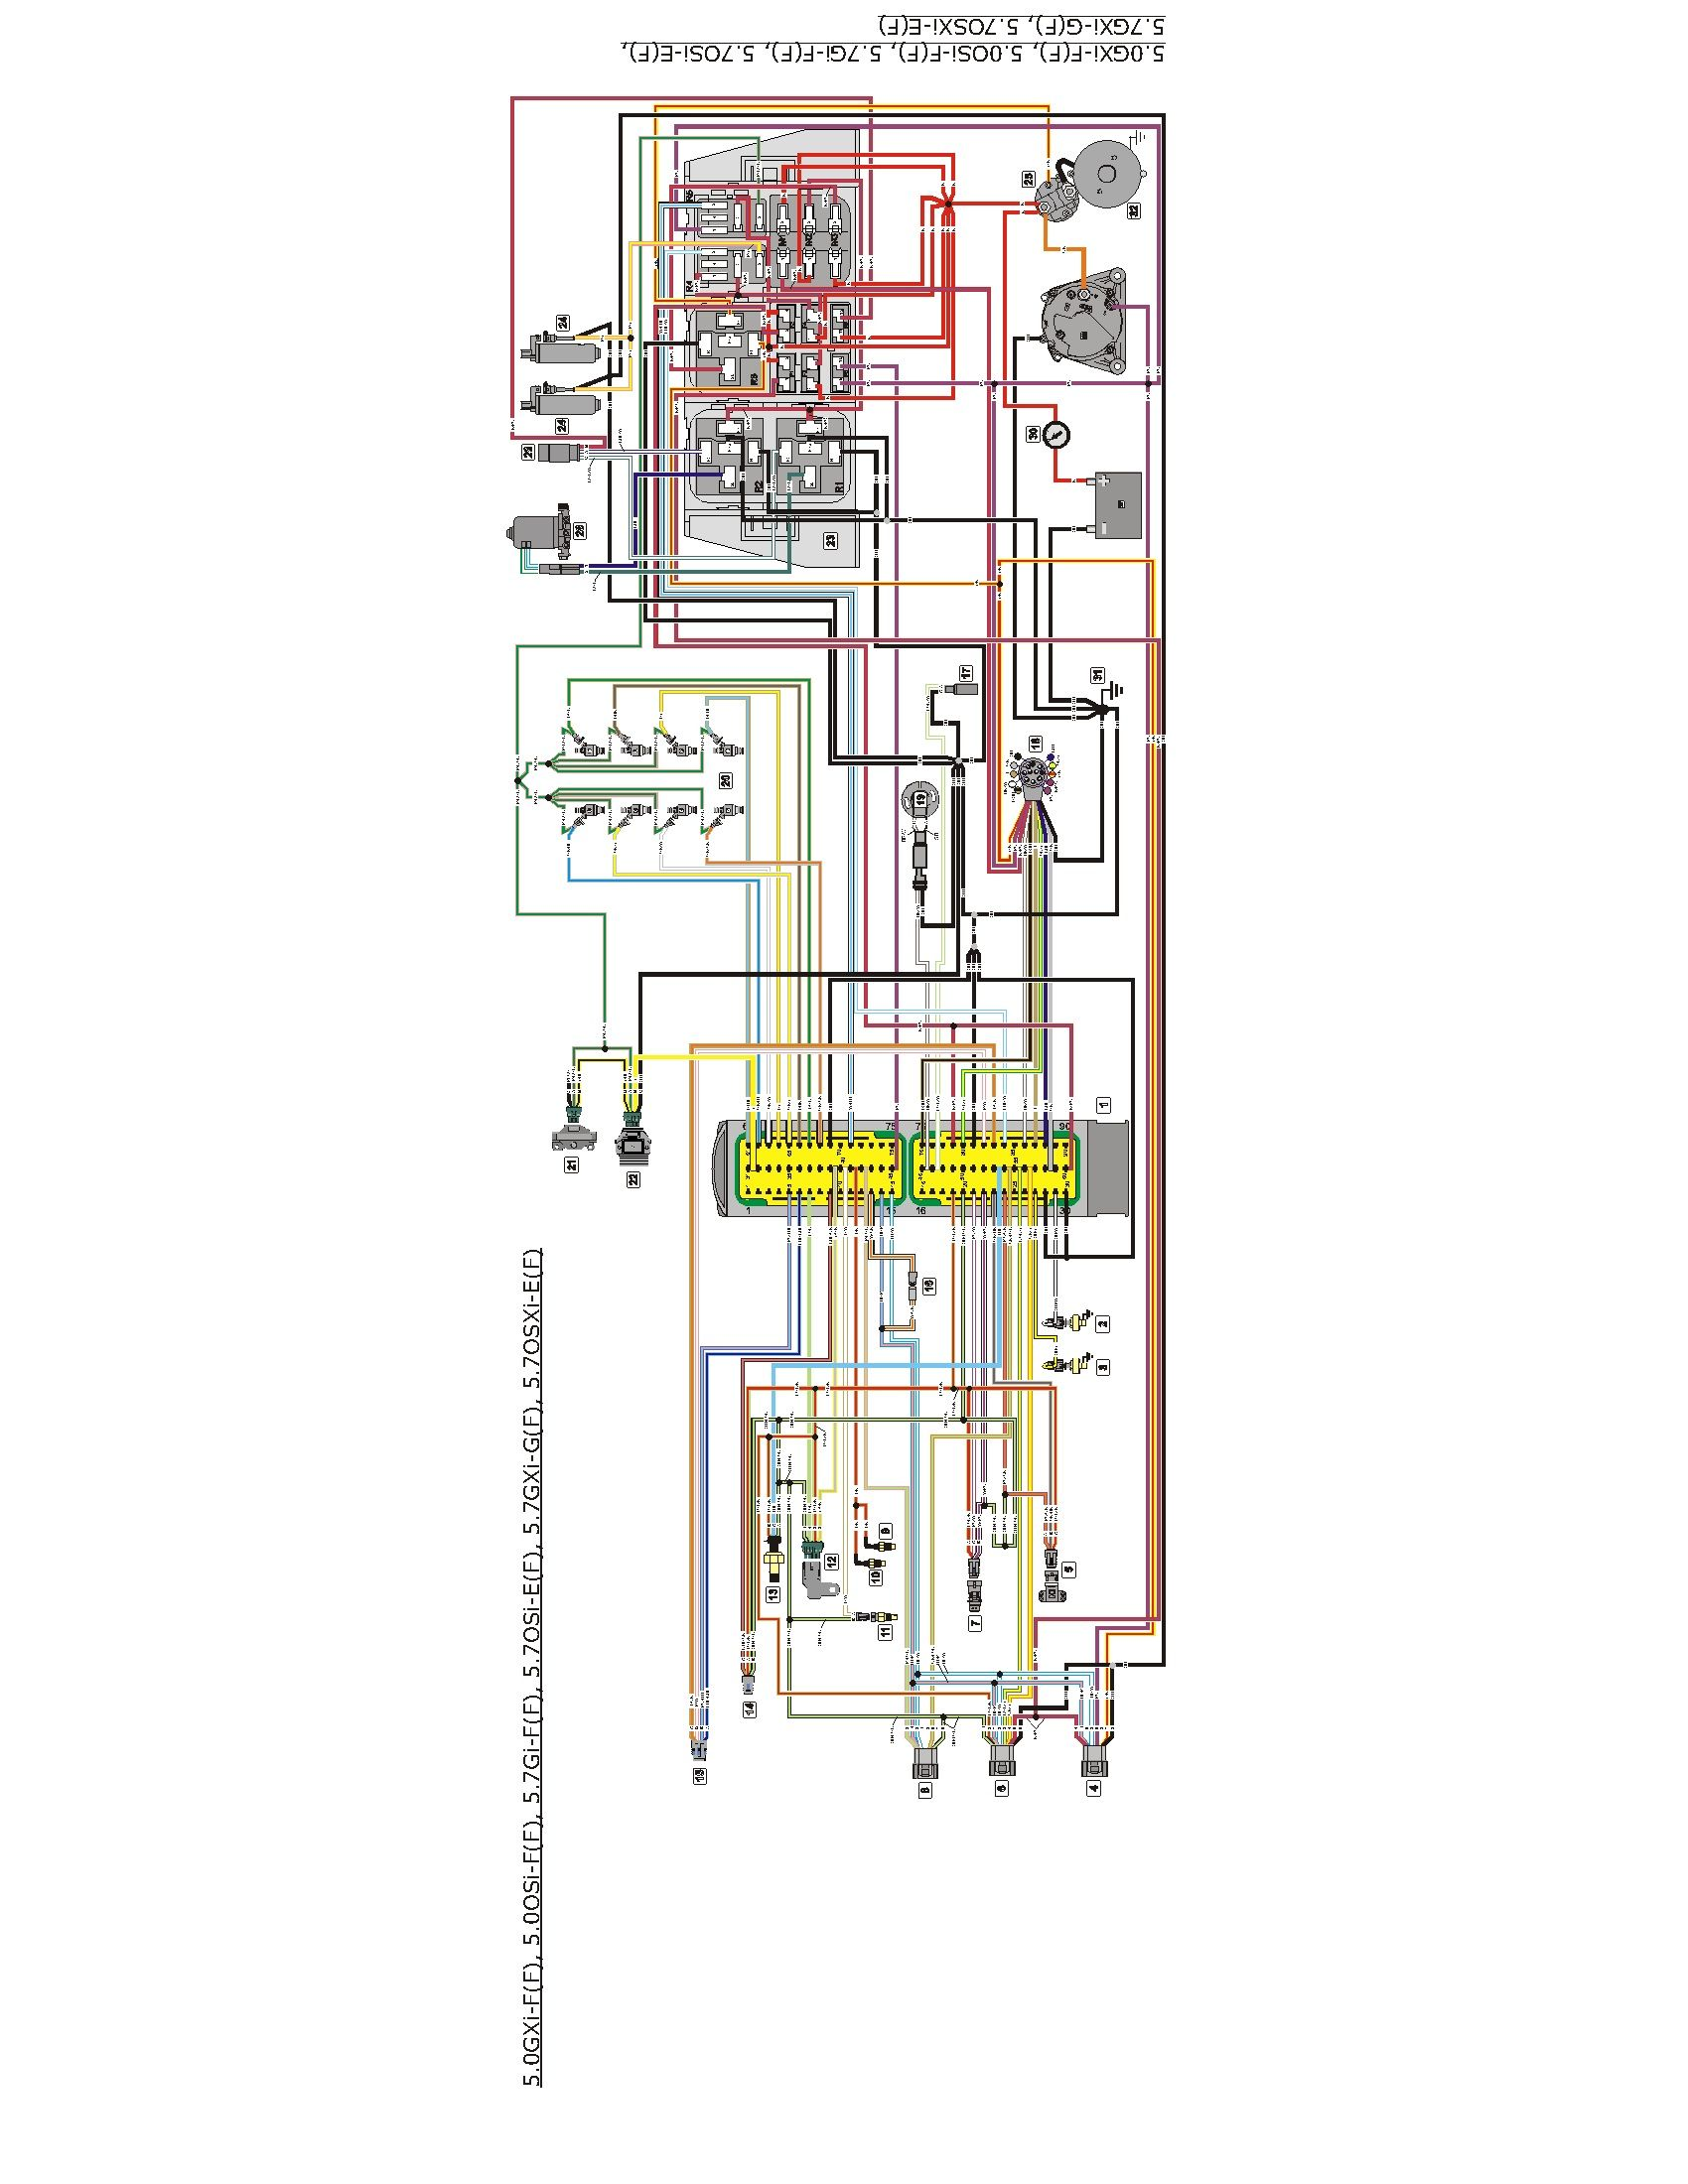 Excellent Volvo S60 Wiring Diagram Basic Electronics Wiring Diagram Wiring Cloud Inamadienstapotheekhoekschewaardnl